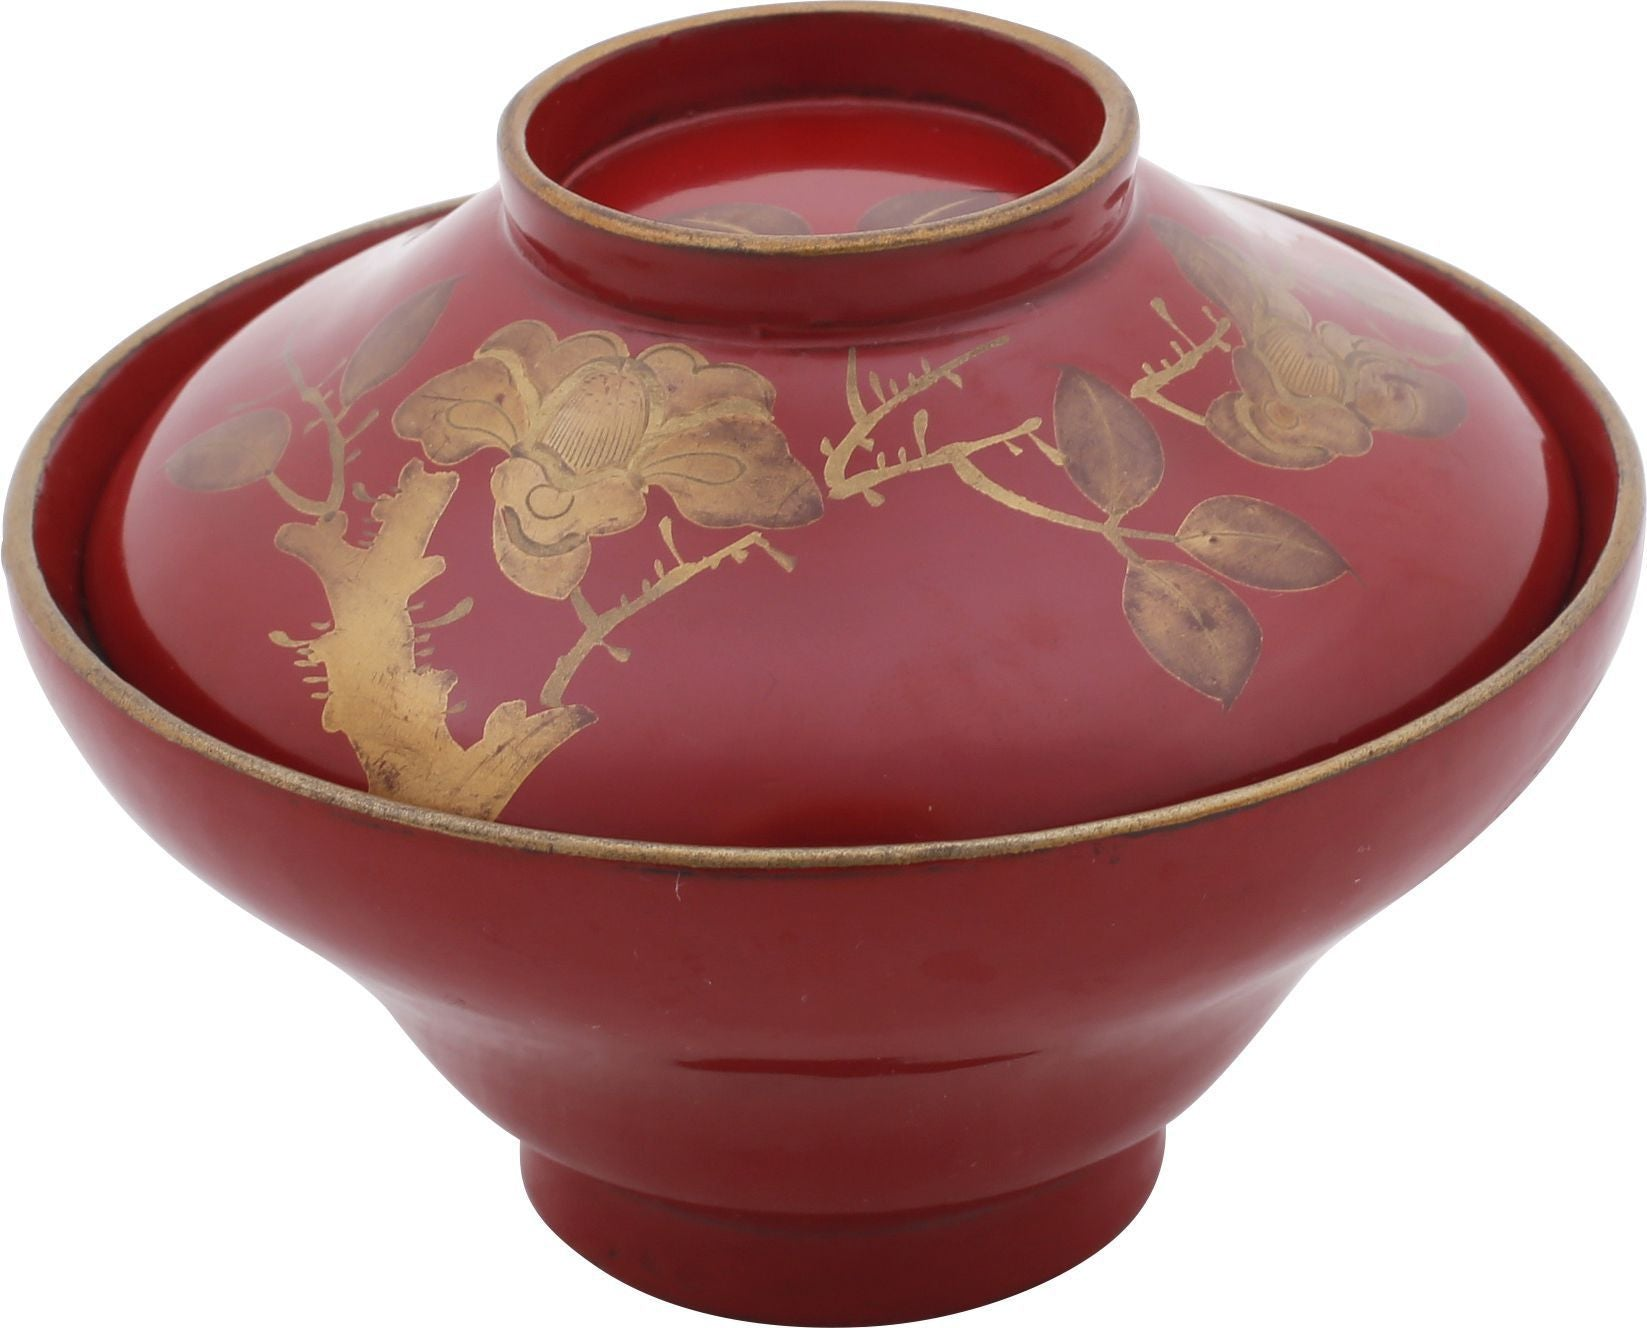 Japanese Lacquer Bowl And Cover - Product